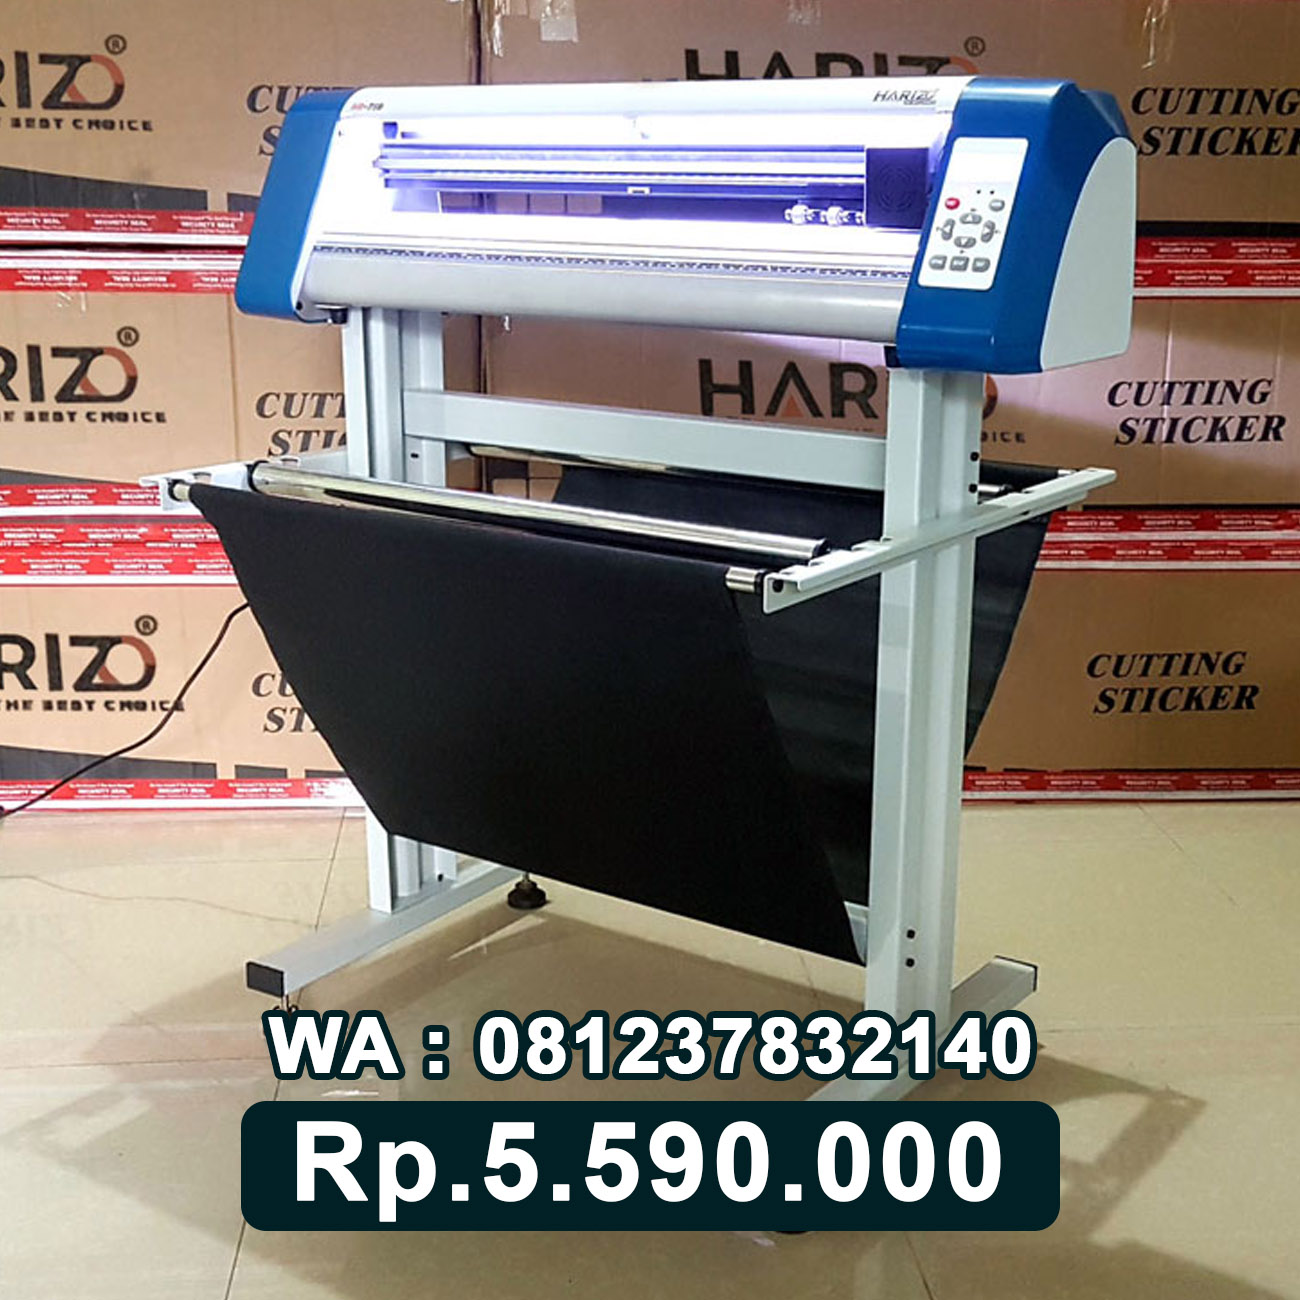 JUAL MESIN CUTTING STICKER HARIZO 720 Tanggamus